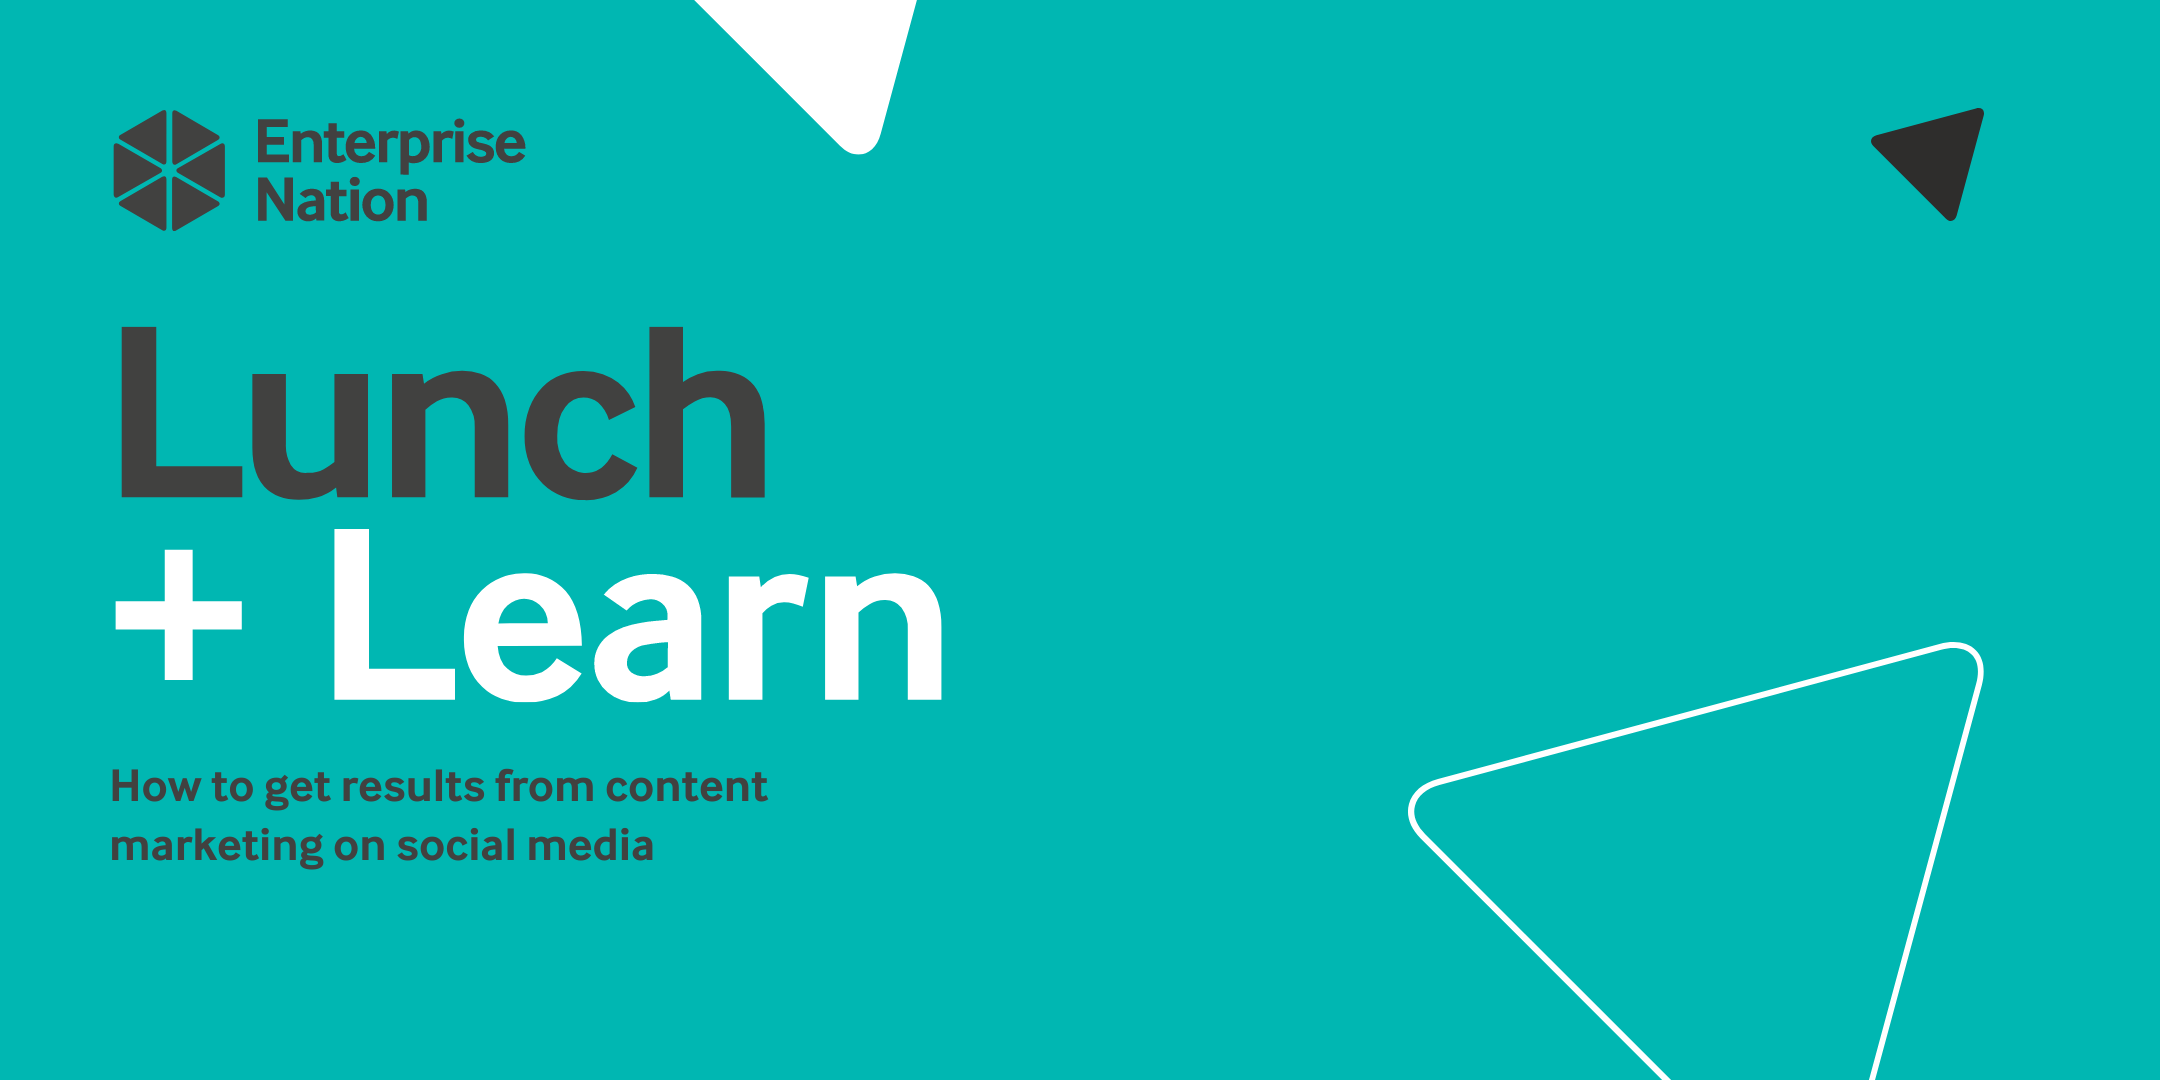 Lunch and Learn: How to get results from content marketing on social media